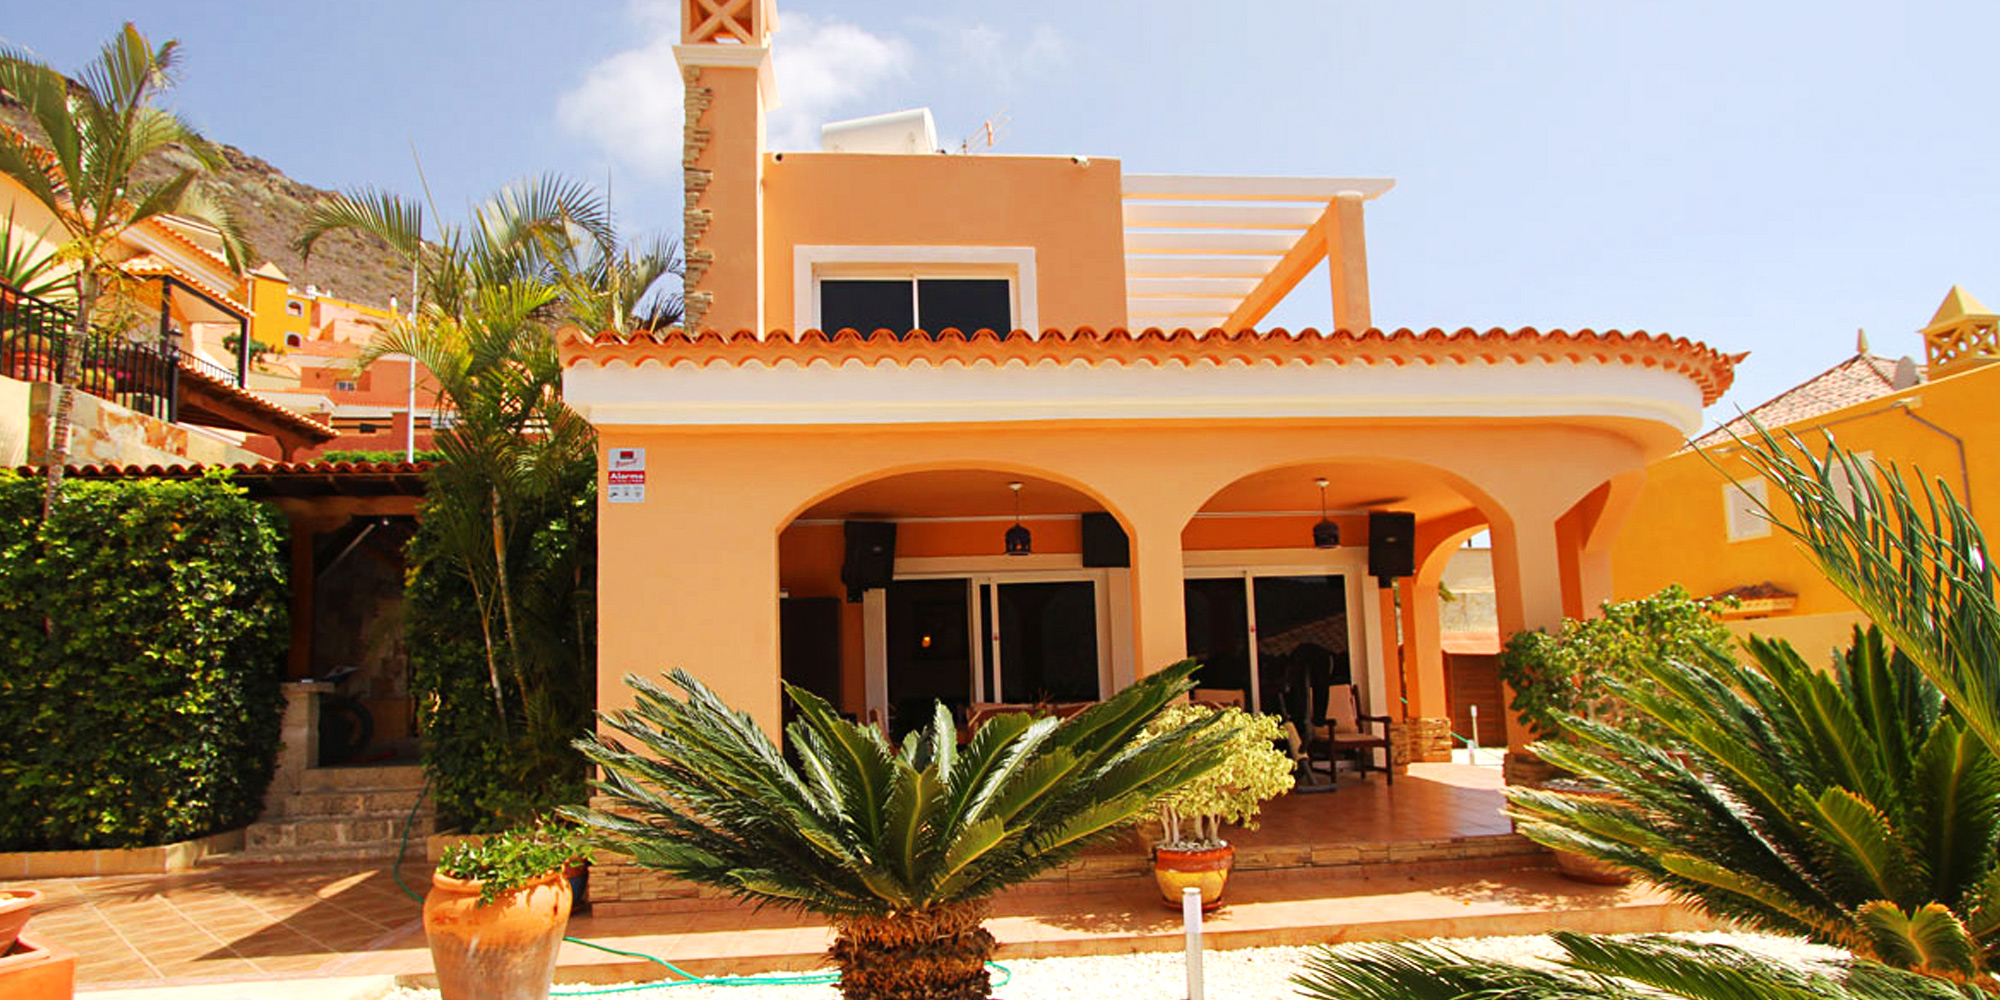 Detached House – Costa Adeje, Tenerife South